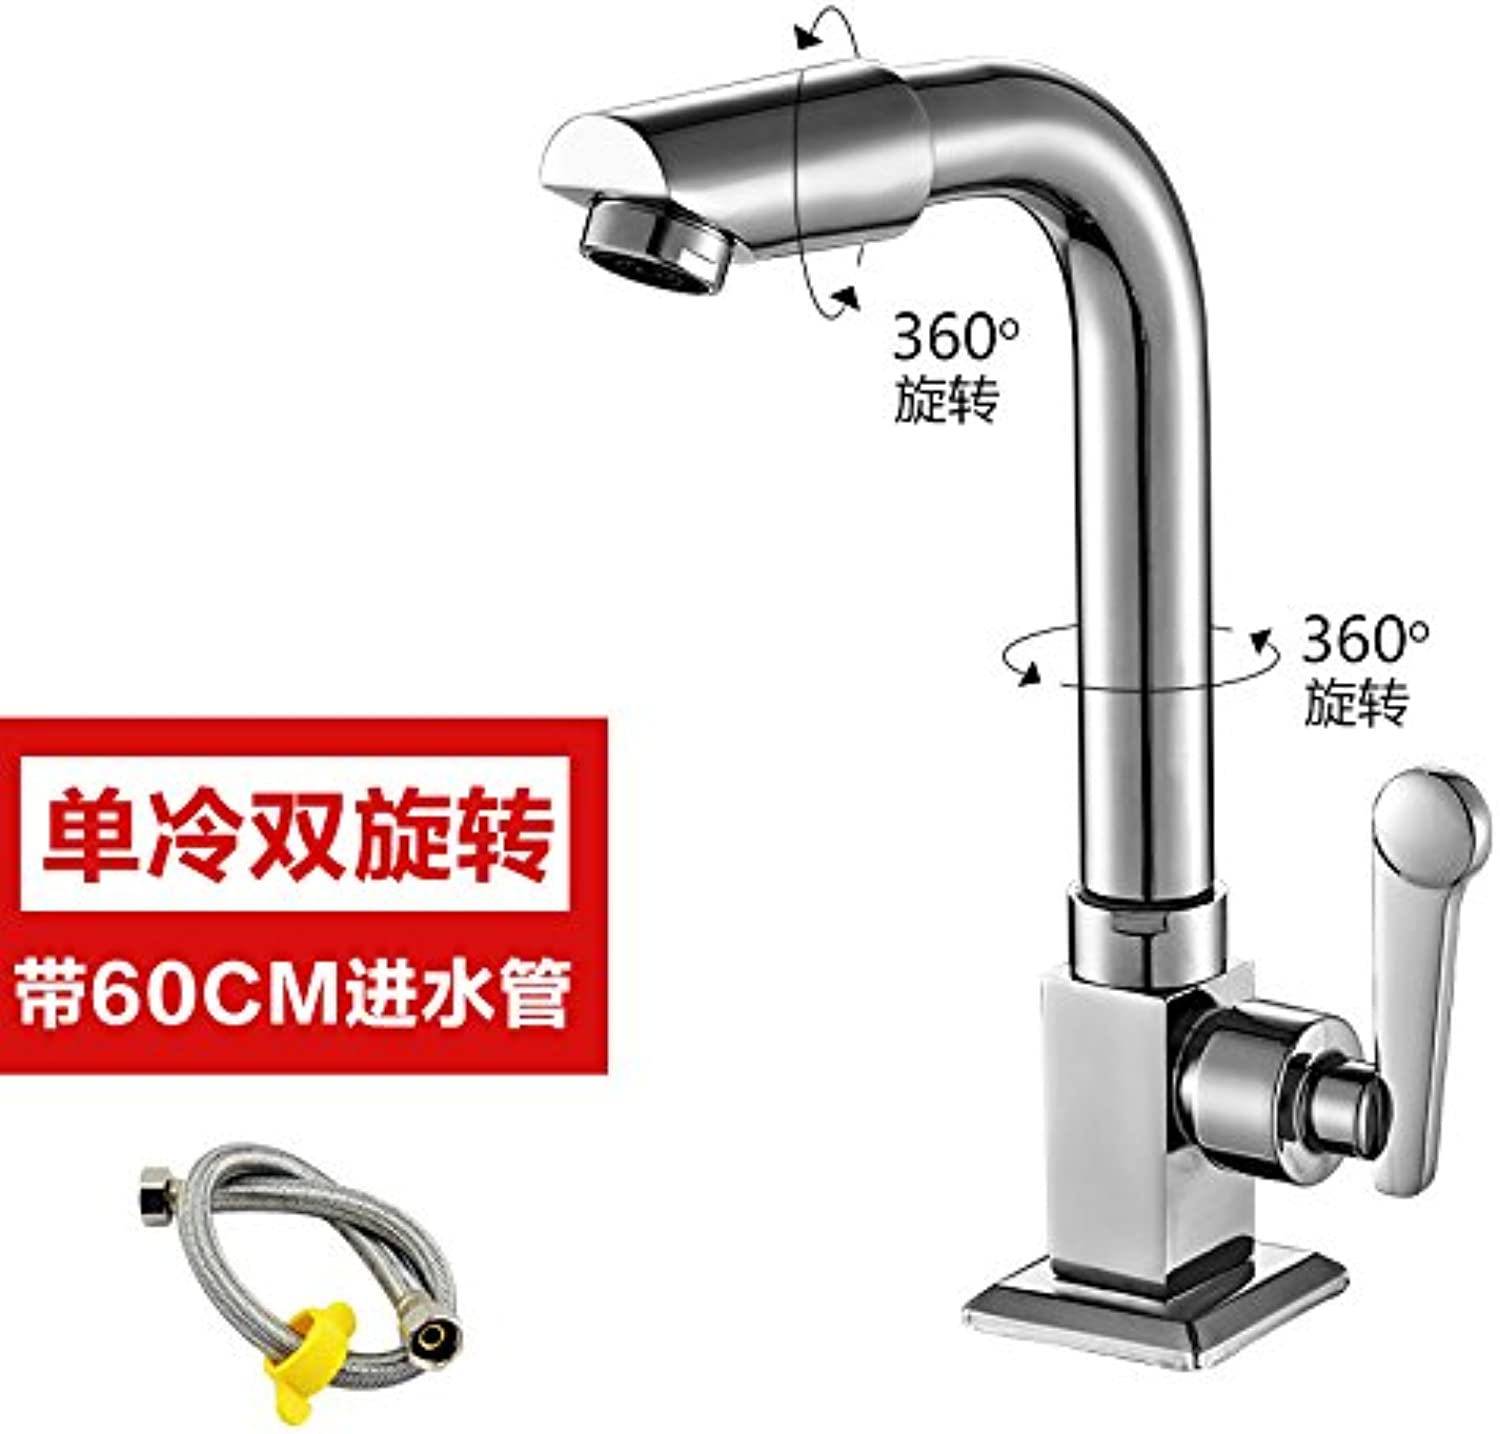 Hlluya Professional Sink Mixer Tap Kitchen Faucet 360 double swivel single cold water faucet copper single cold basin basin washbasin balcony water taps, mixer body +60CM water inlet pipe